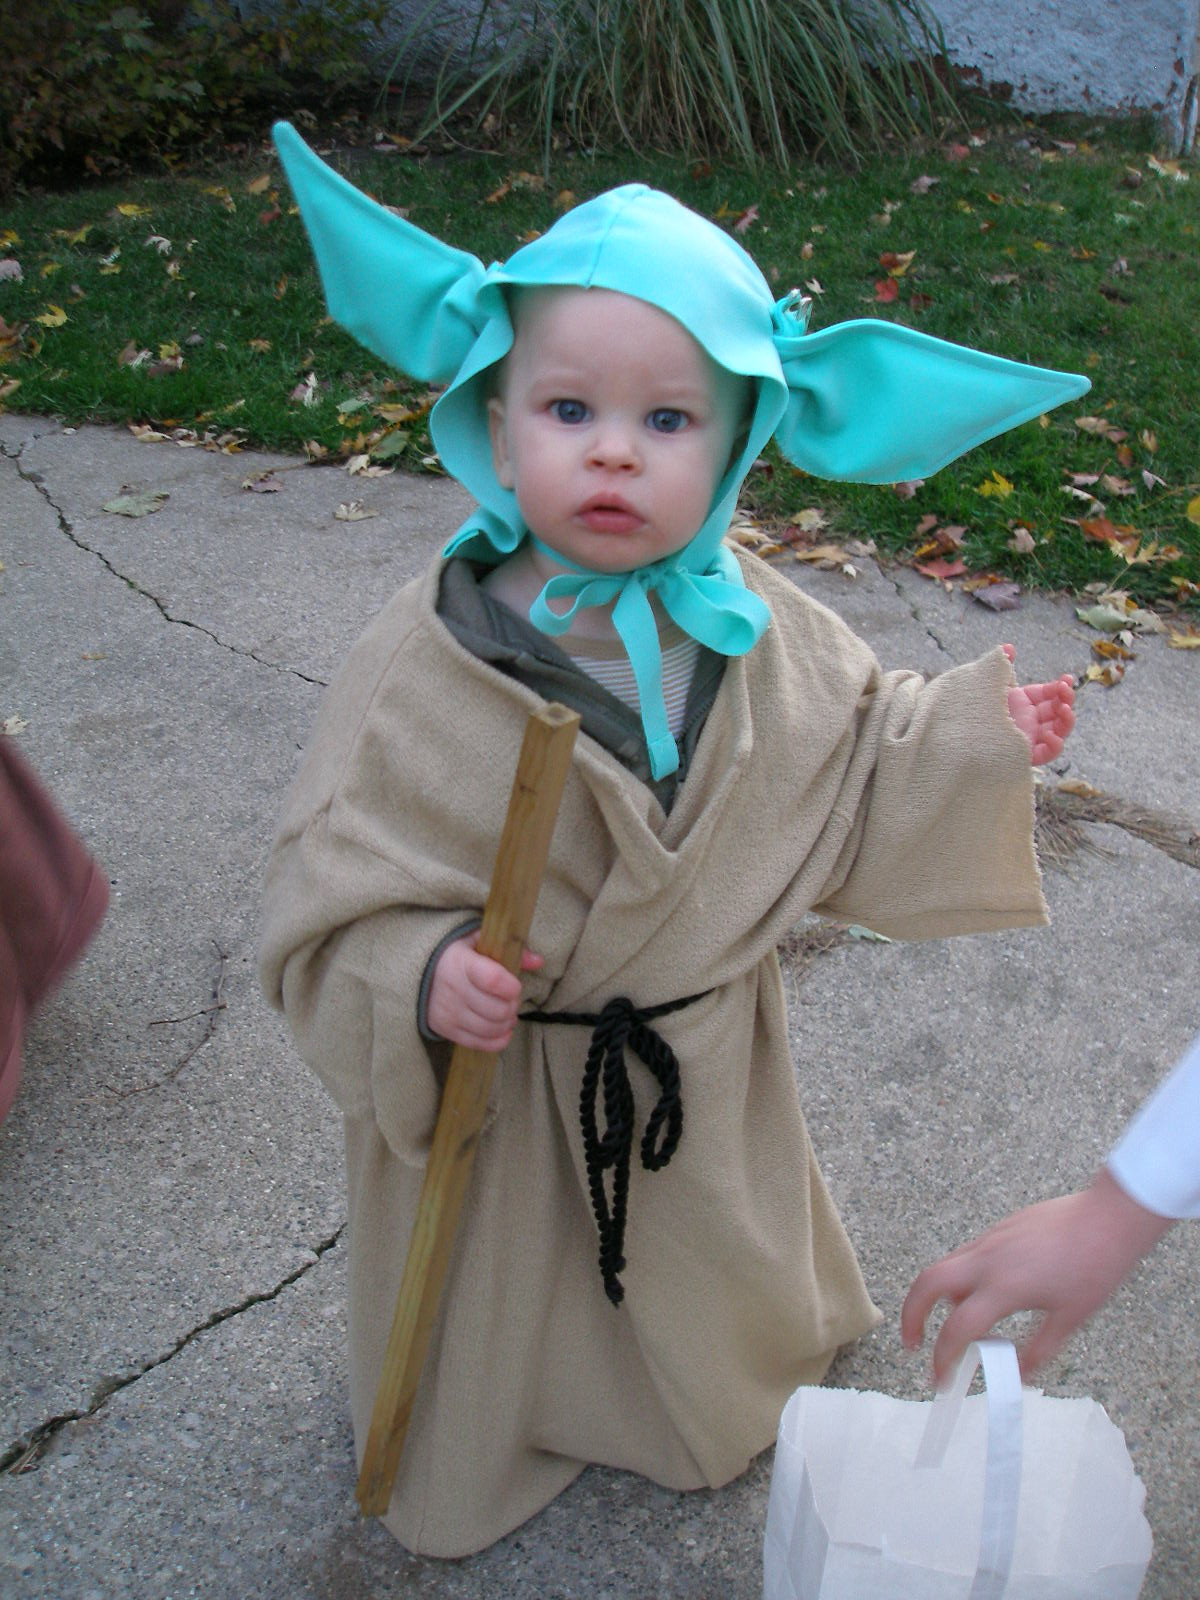 Best ideas about DIY Starwars Costume . Save or Pin Super Savings DIY Star Wars Costumes Baby Yoda Princess Now.